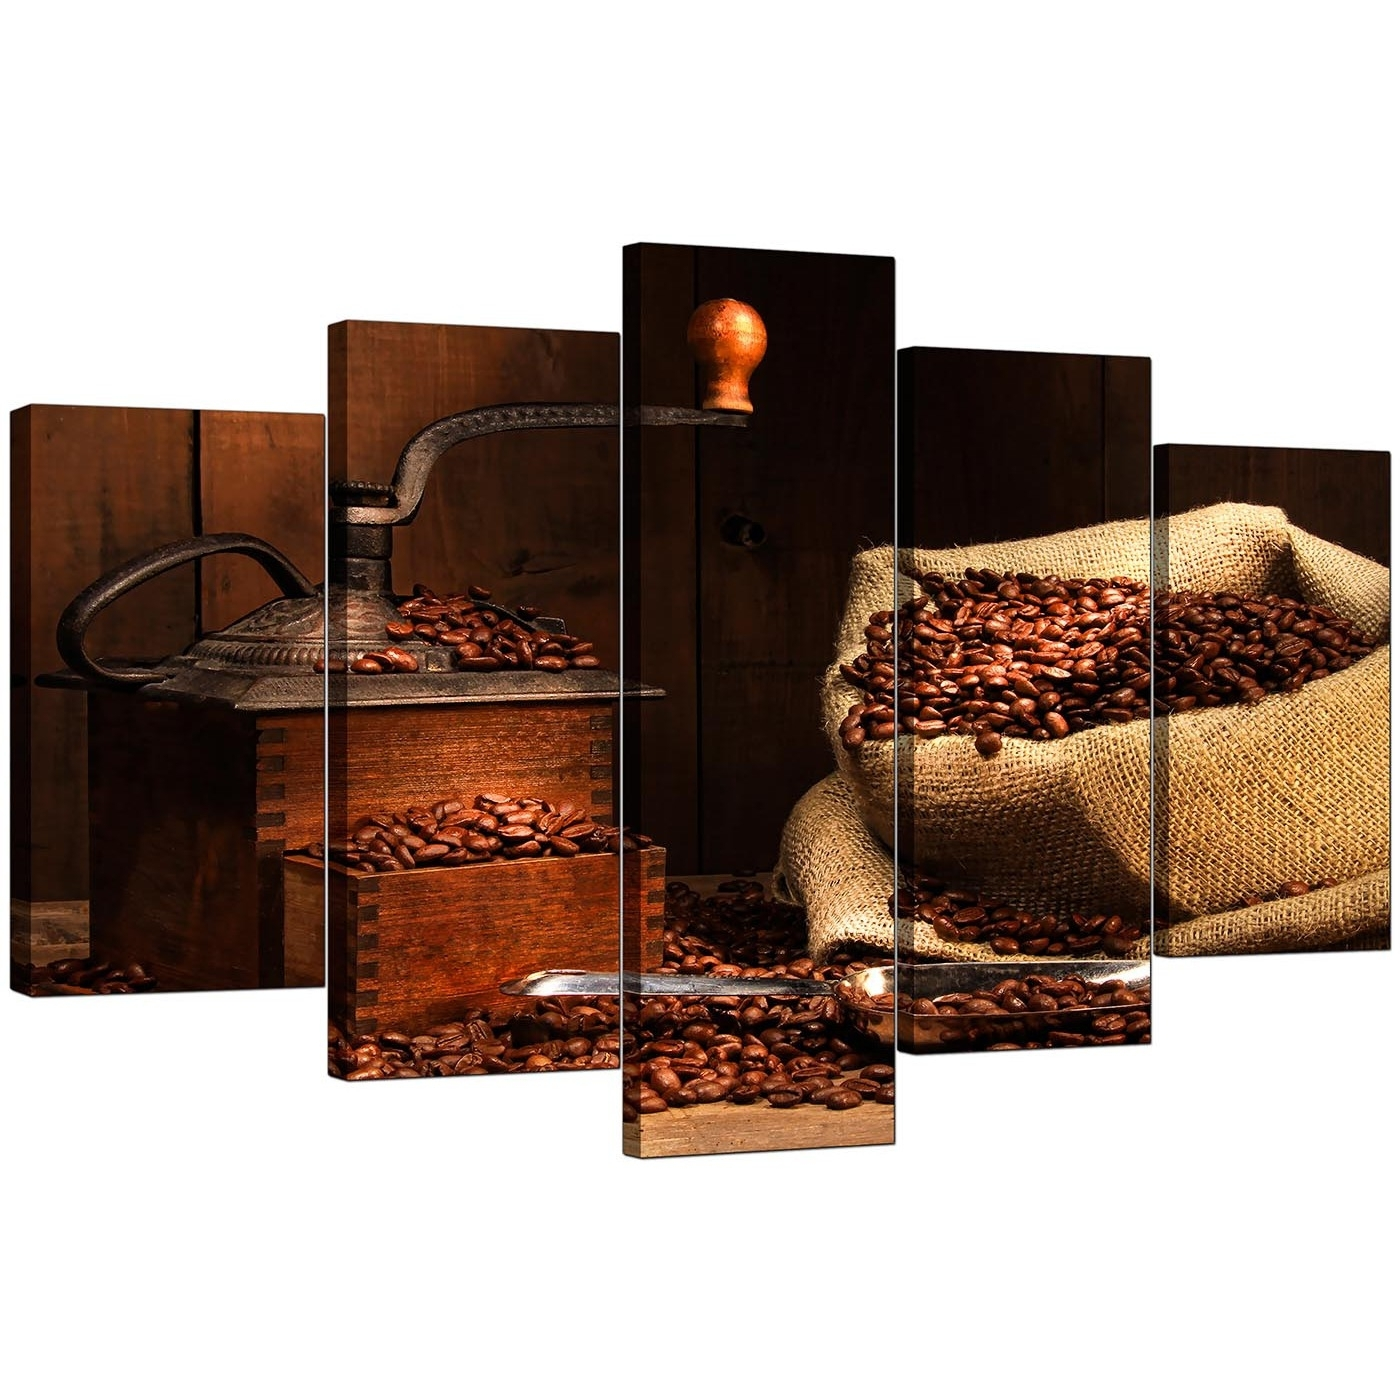 Extra Large Coffee Beans Canvas Wall Art 5 Piece In Brown In Recent Coffee Canvas Wall Art (View 9 of 15)